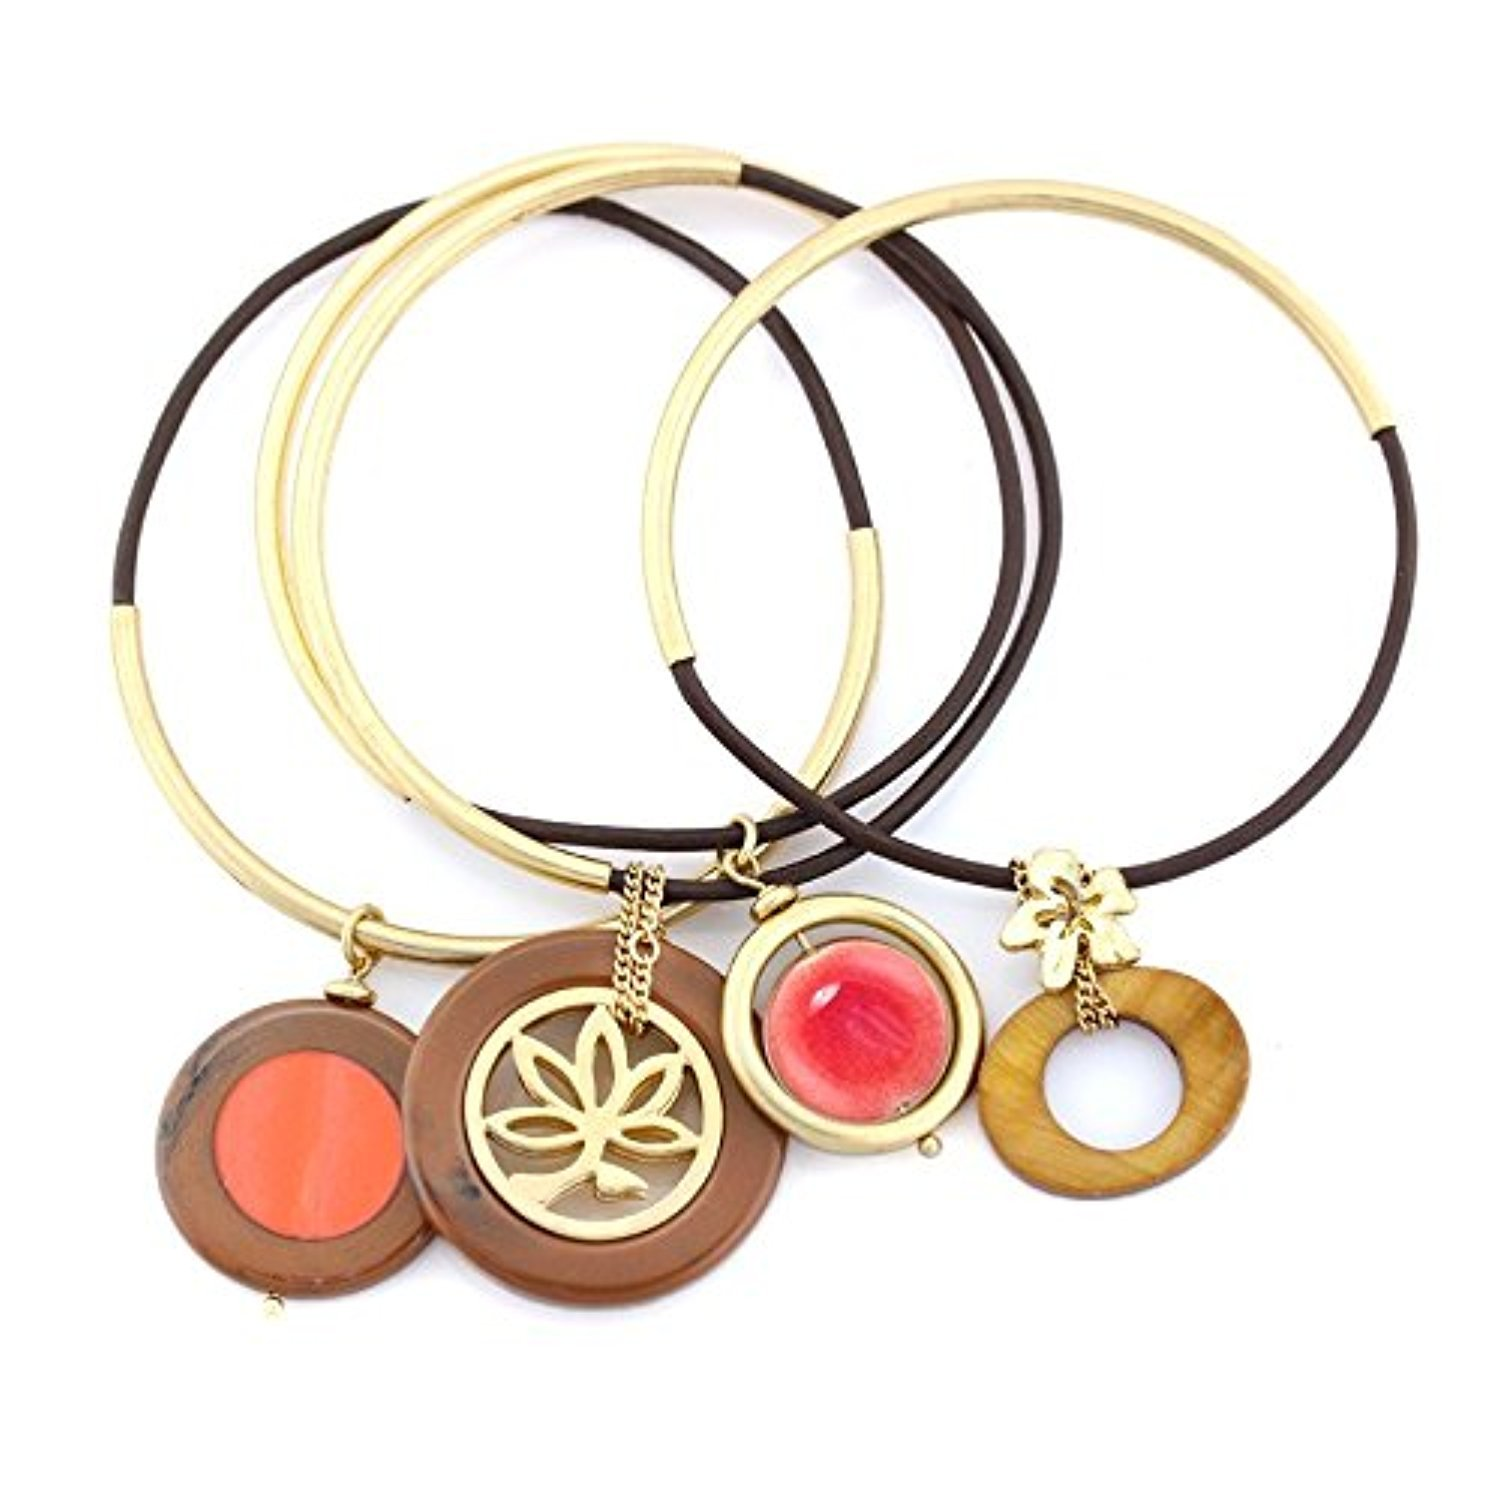 Gold-Tone Metal Filigree Coral And Brown Set Of 4 Charm Bracelets